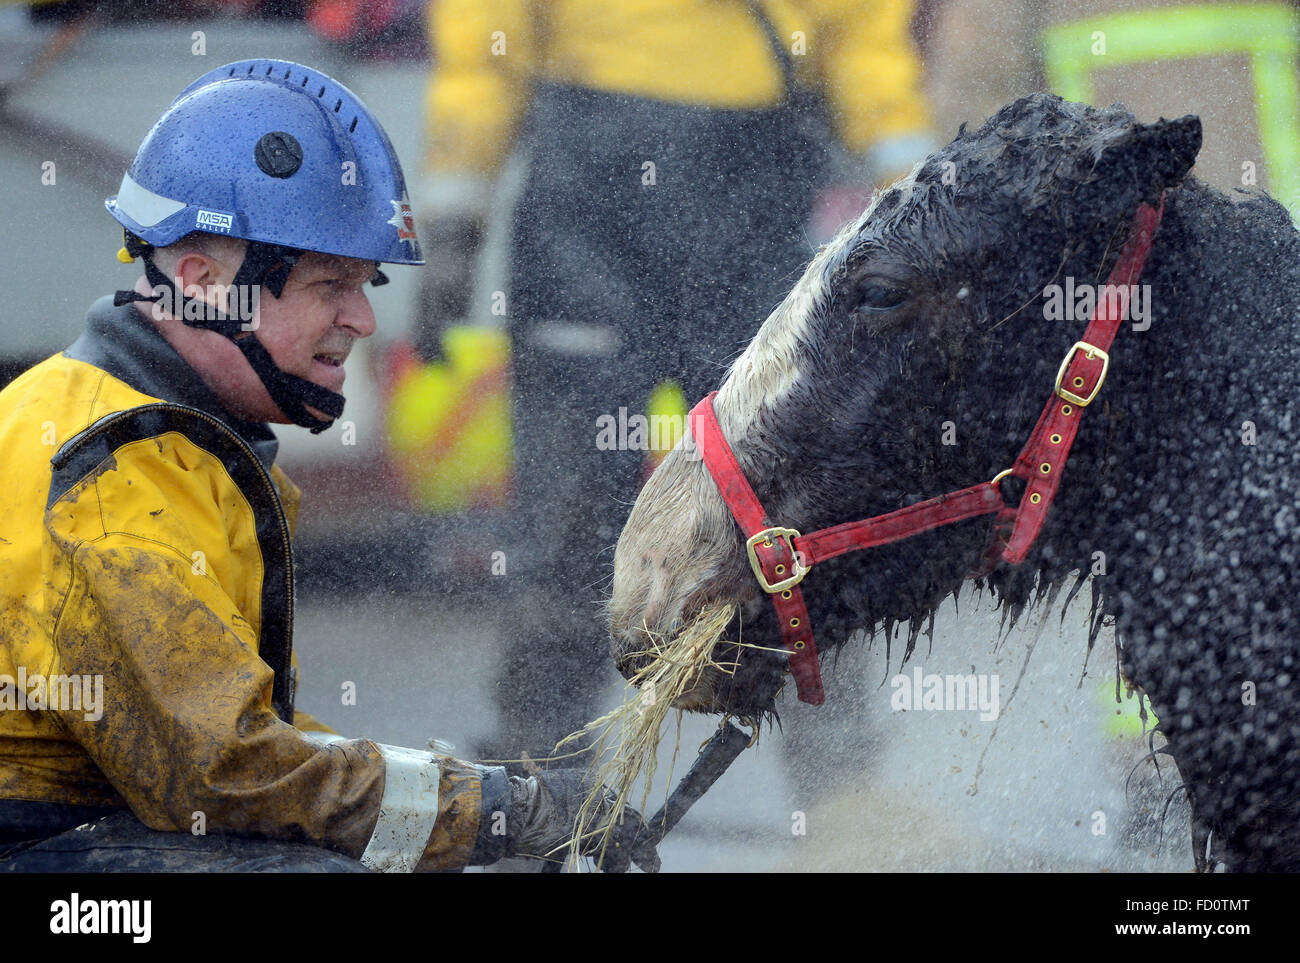 UK, trapped horse rescued from muddy field by vets and fire service, Hailsham, East Sussex - Stock Image